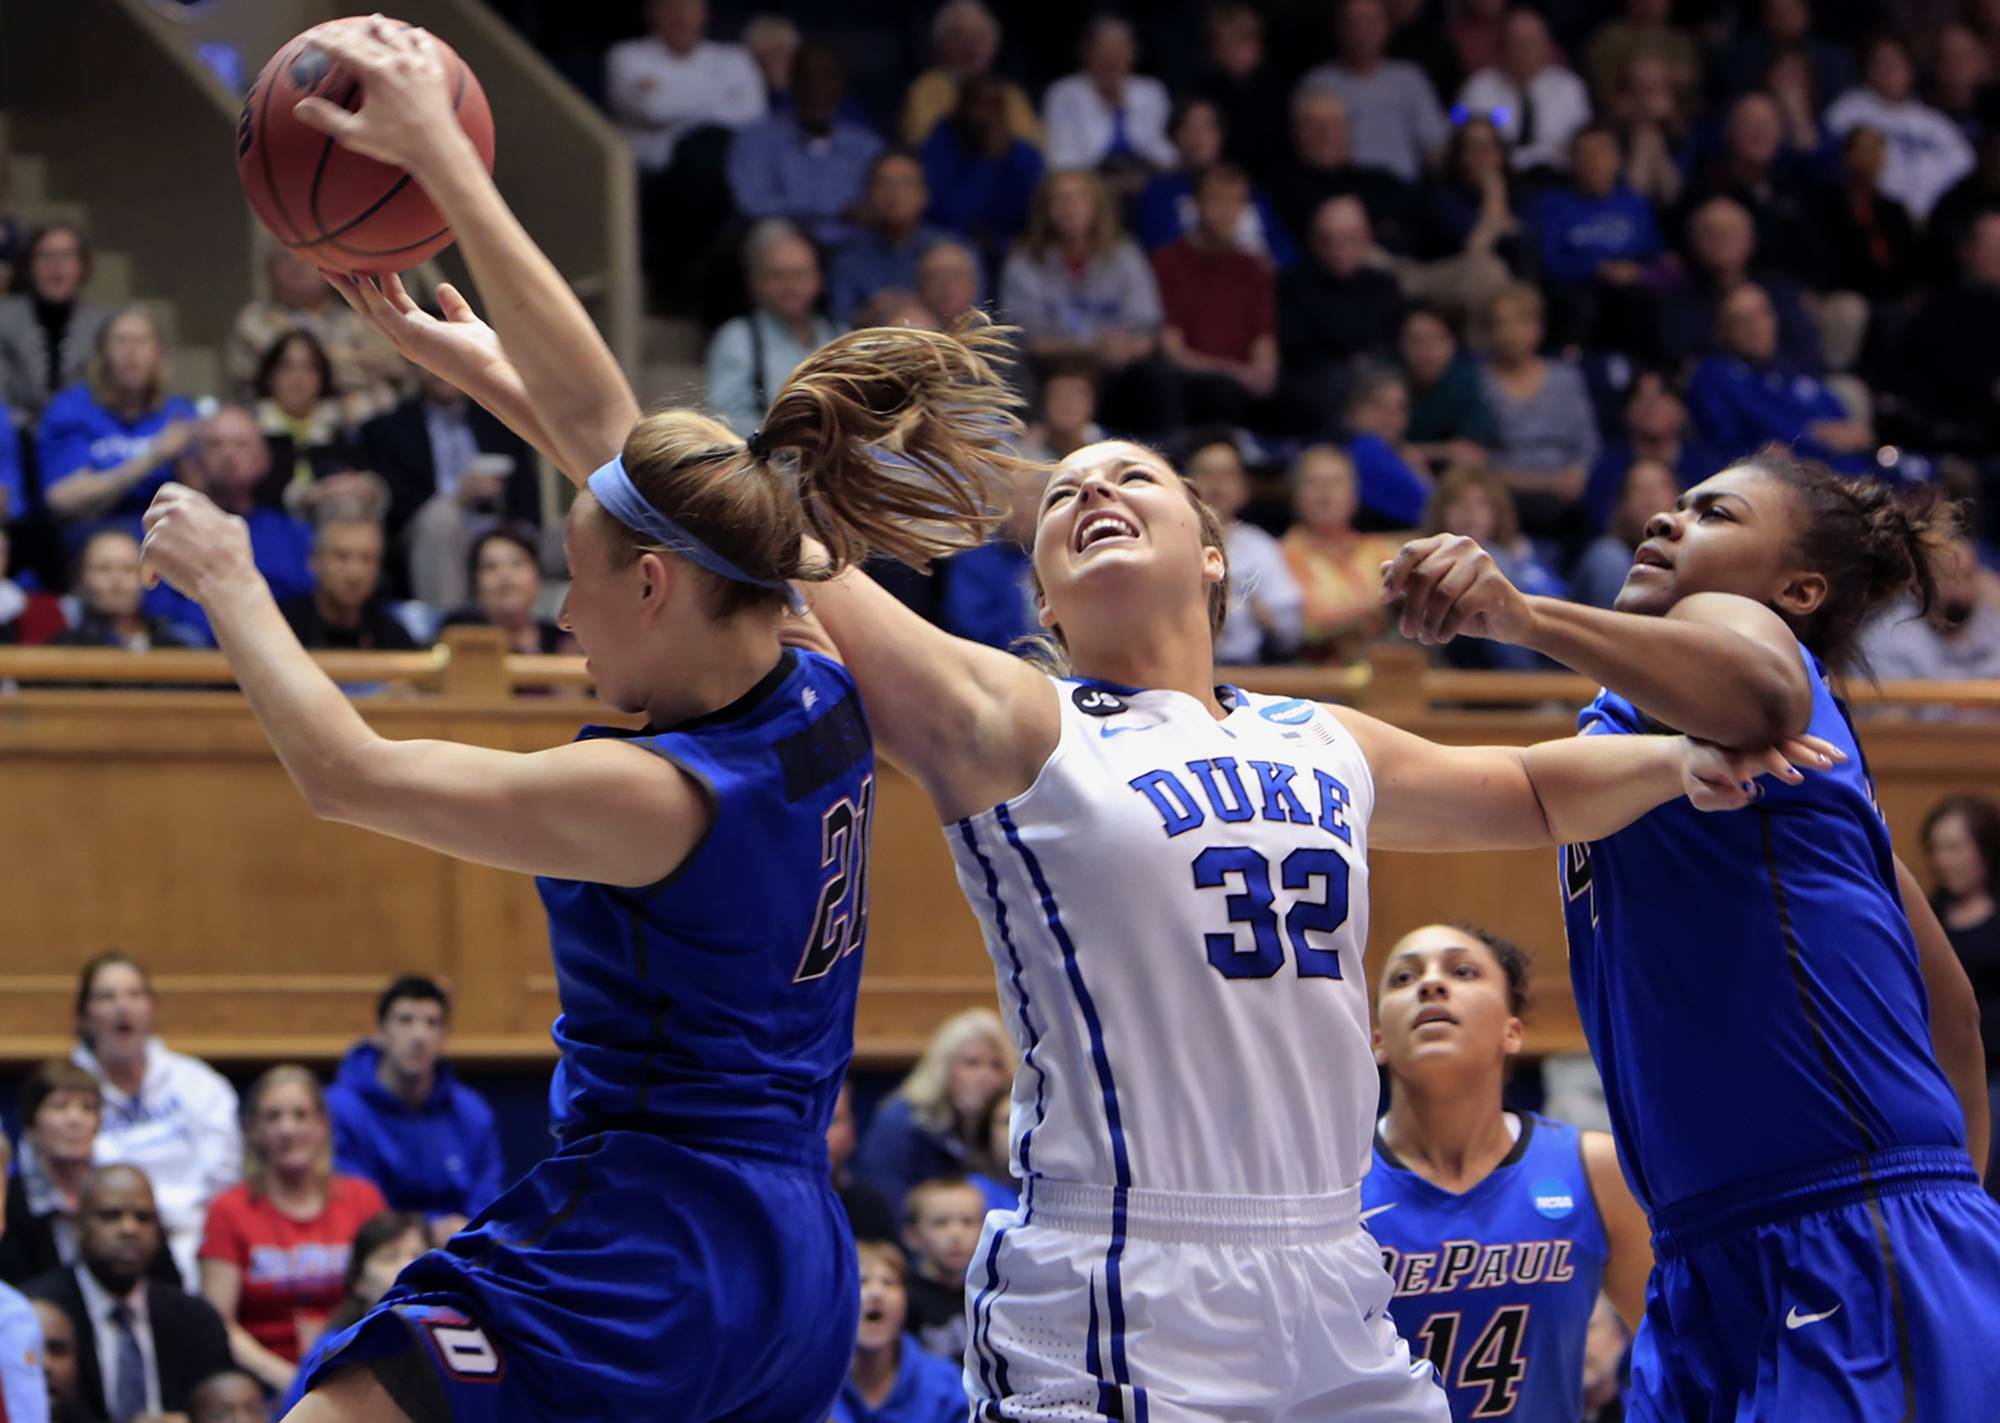 DePaul's Megan Rogowski, left, blocks a shot by Duke's Tricia Liston (32) near DePaul's Brandi Harvey-Carr, right, during the first half of their second-round game in the NCAA basketball tournament in Durham, N.C., Monday, March 24, 2014.